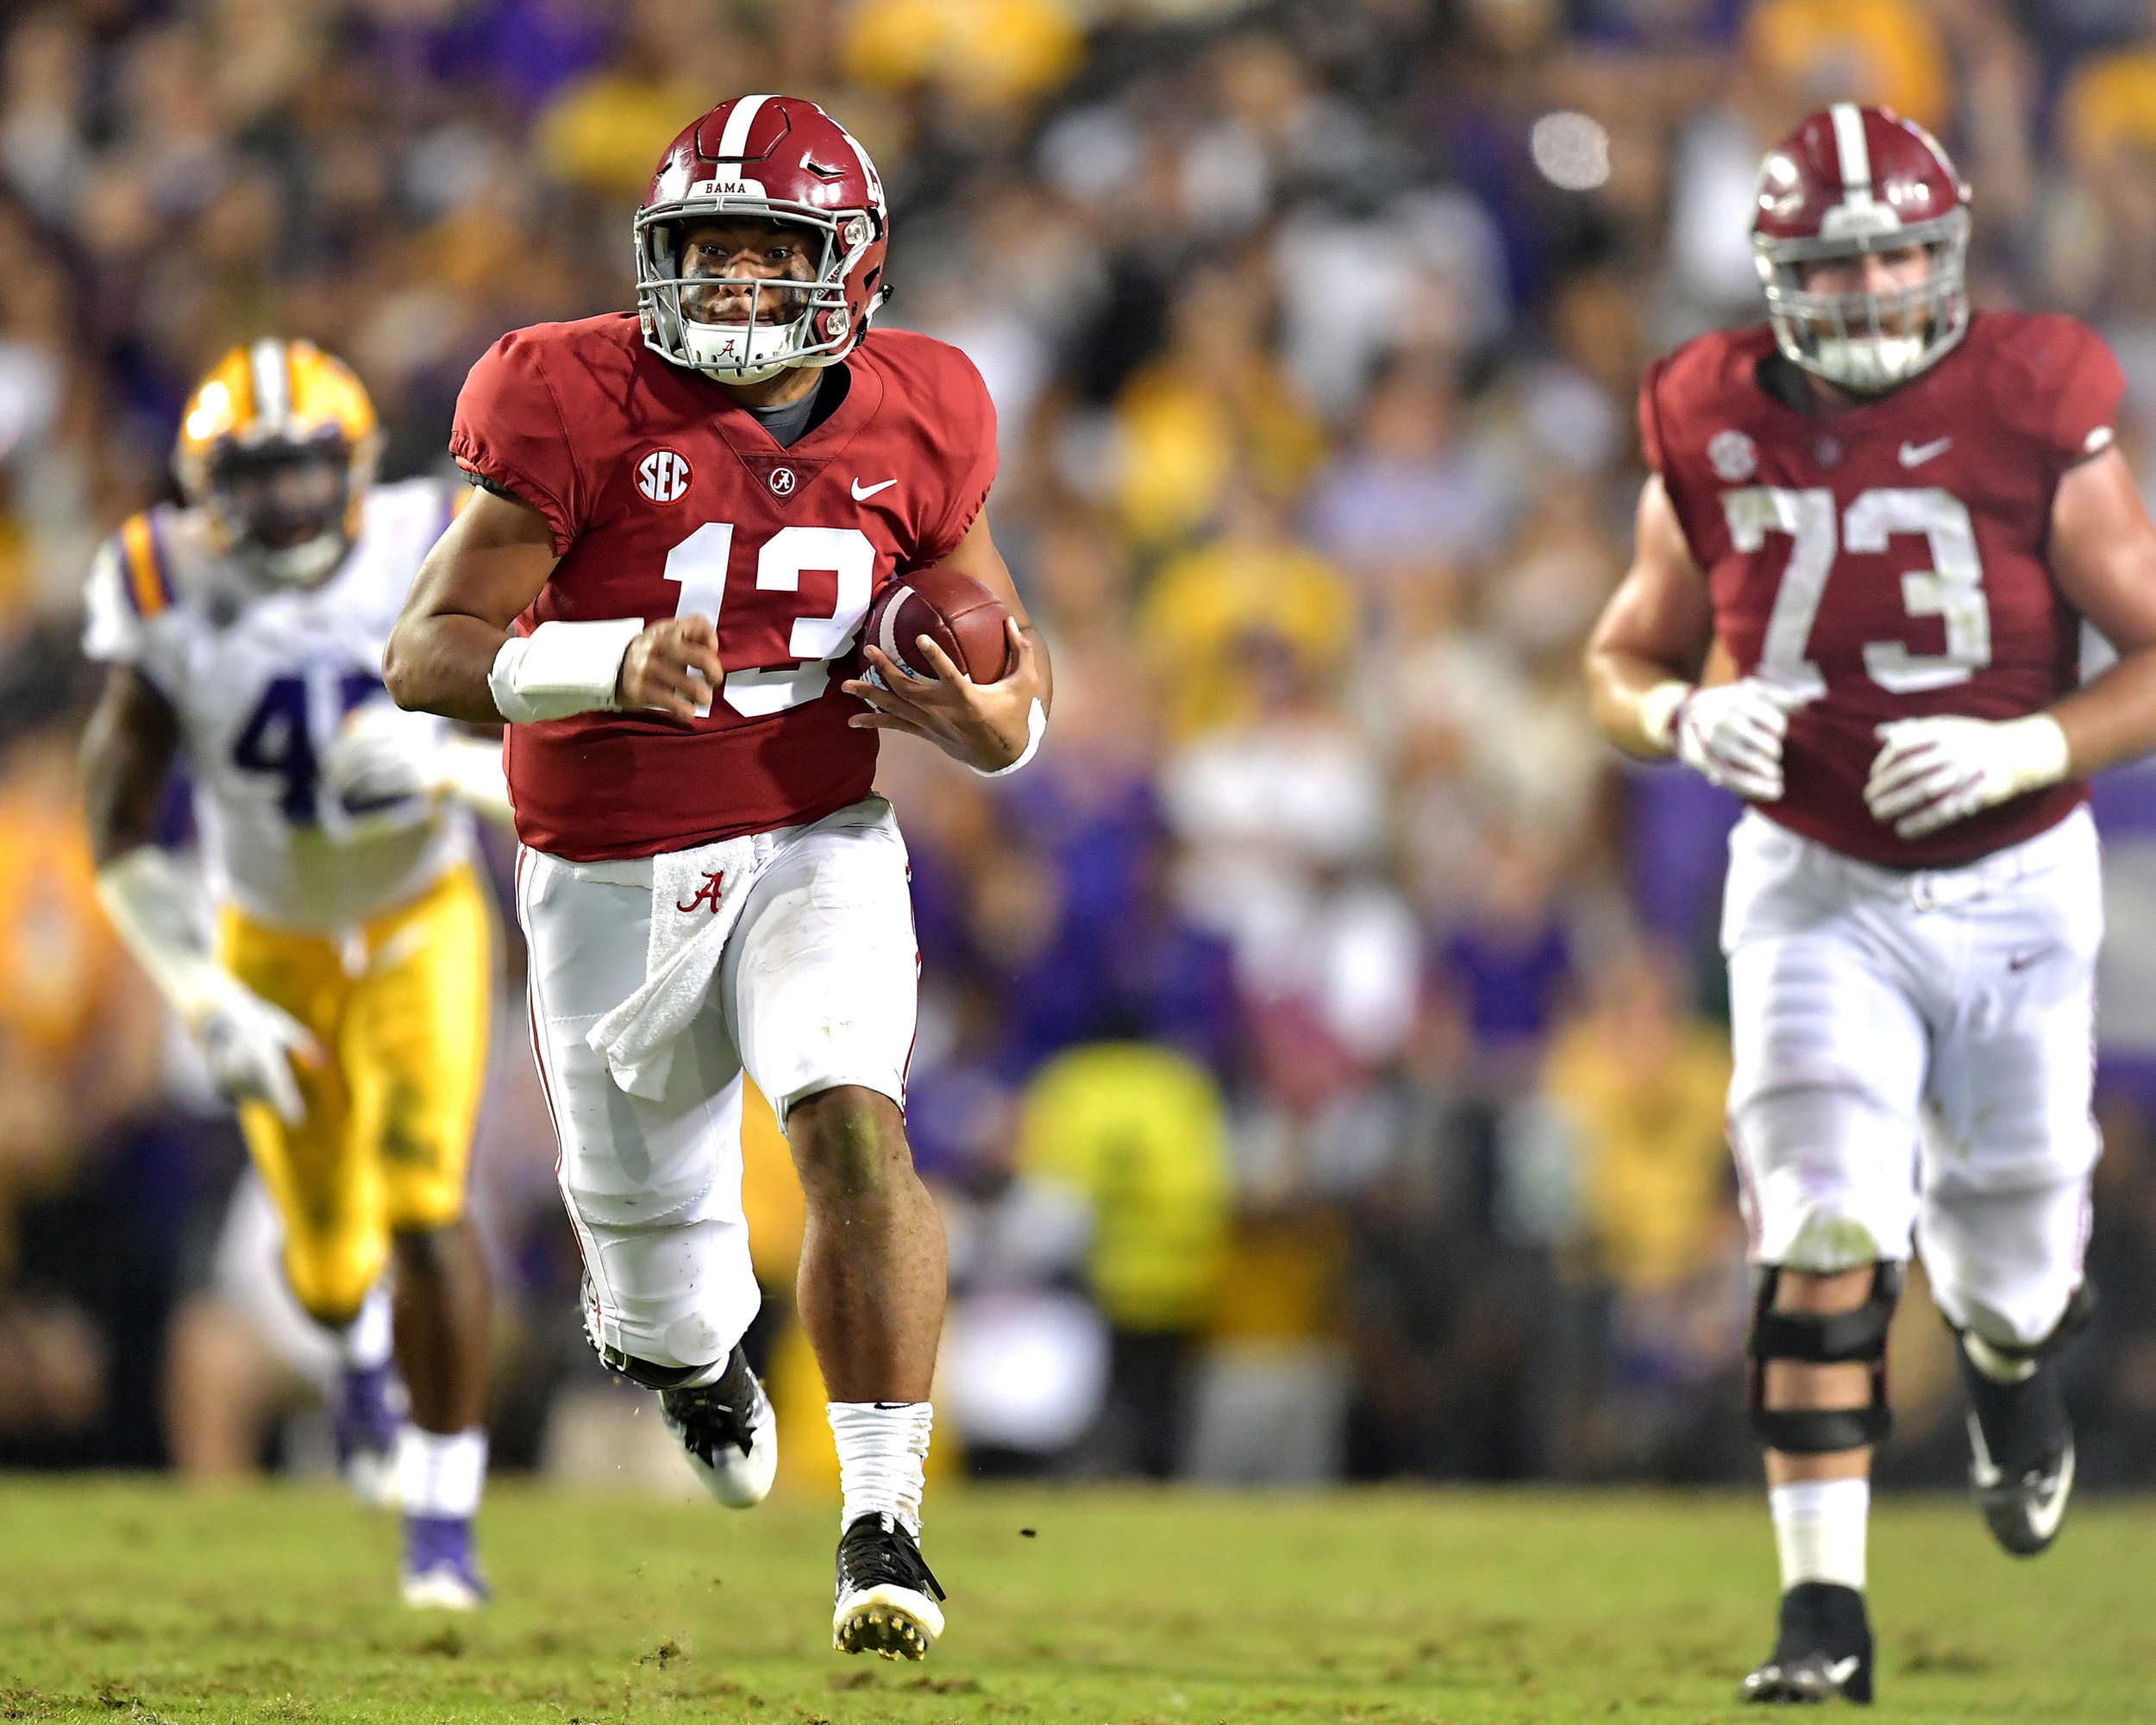 Alabama Crimson Tide quarterback Tua Tagovailoa (13) on his way to a touchdown in the second half of an NCAA football game against the LSU Tigers Saturday, November 3, 2018, at Tiger Stadium in Baton Rouge, La. Alabama wins 29-0. (Photo by Lee Walls)